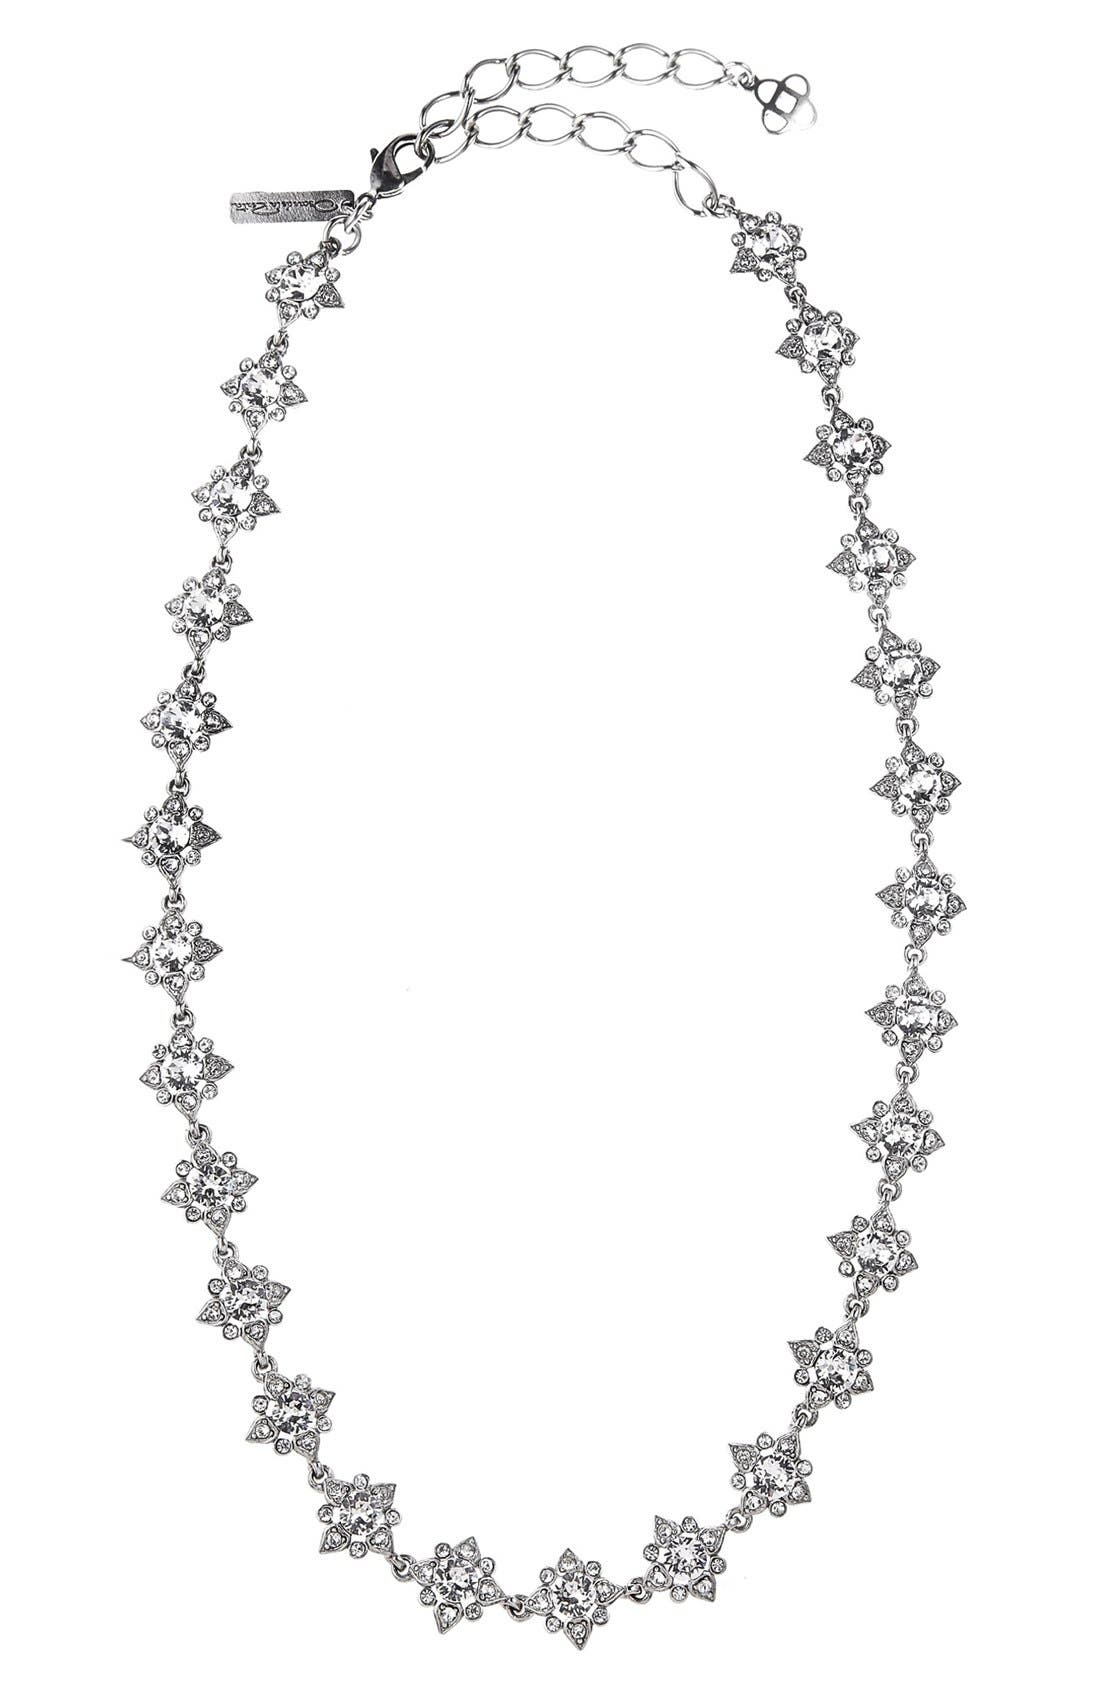 Alternate Image 1 Selected - Oscar de la Renta 'Delicate Star' Swarovski Crystal Collar Necklace